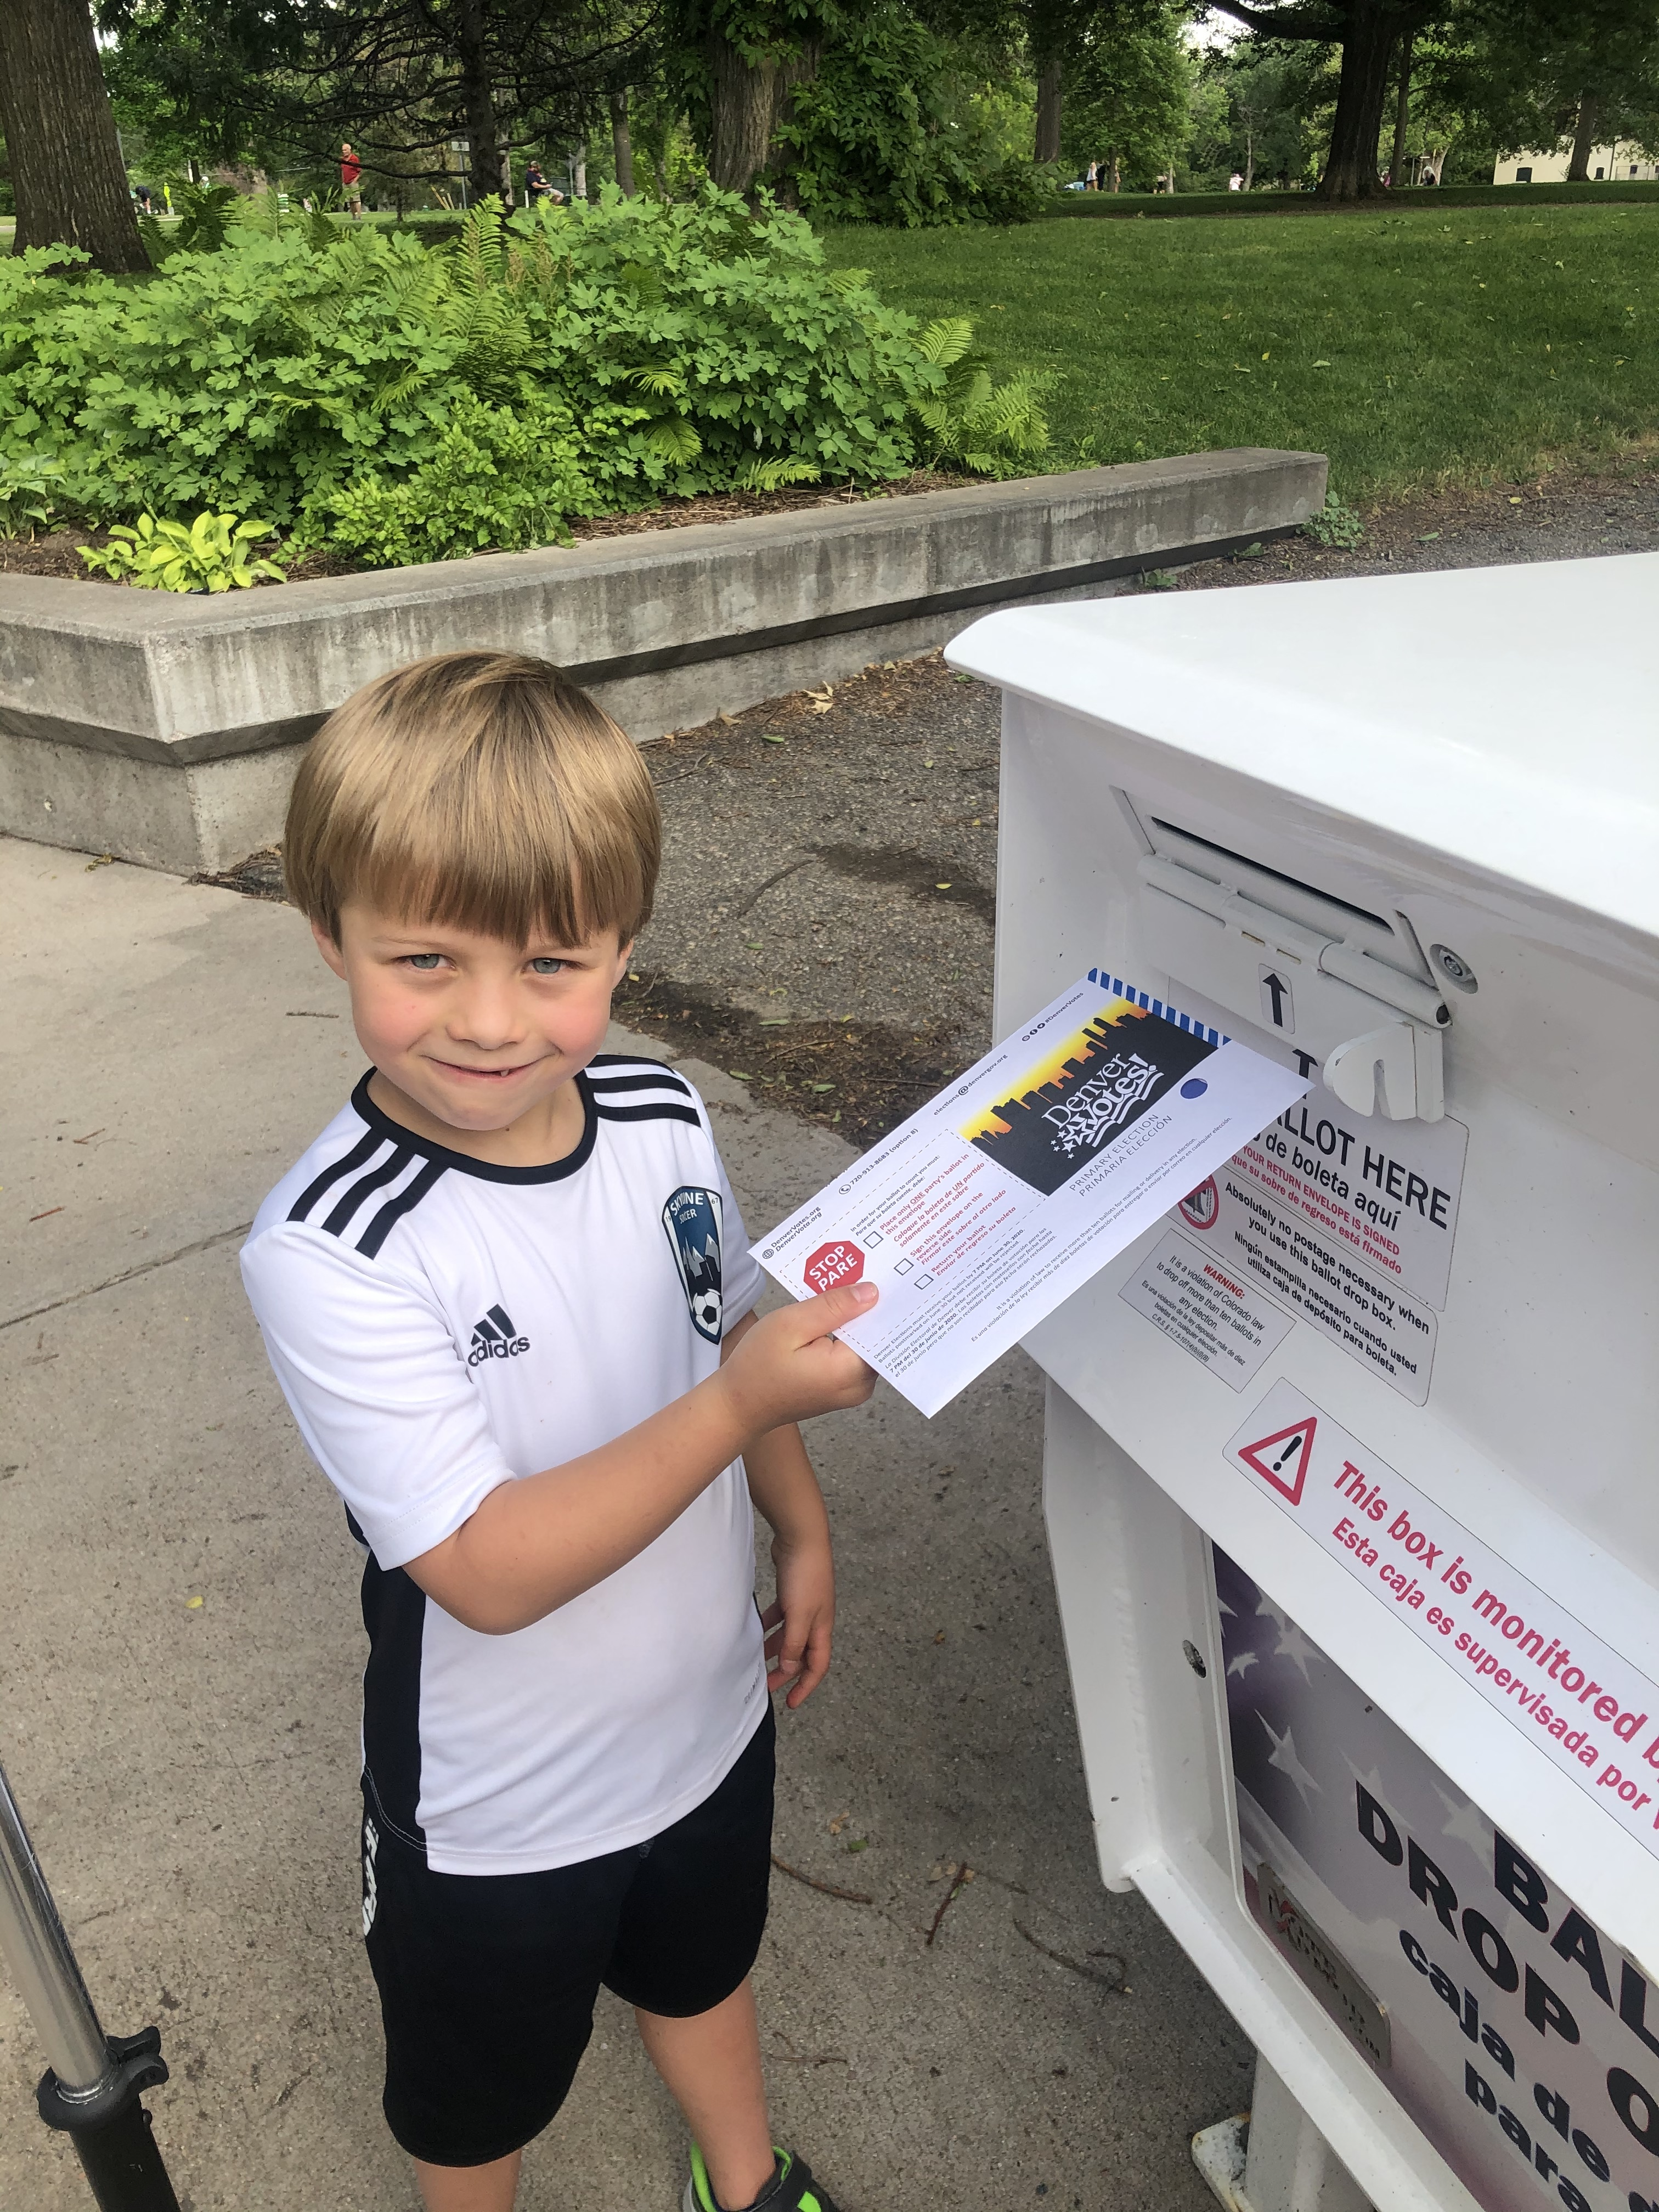 McReynolds' son Kenton, 7, helping her vote during Colorado's primary election this summer.